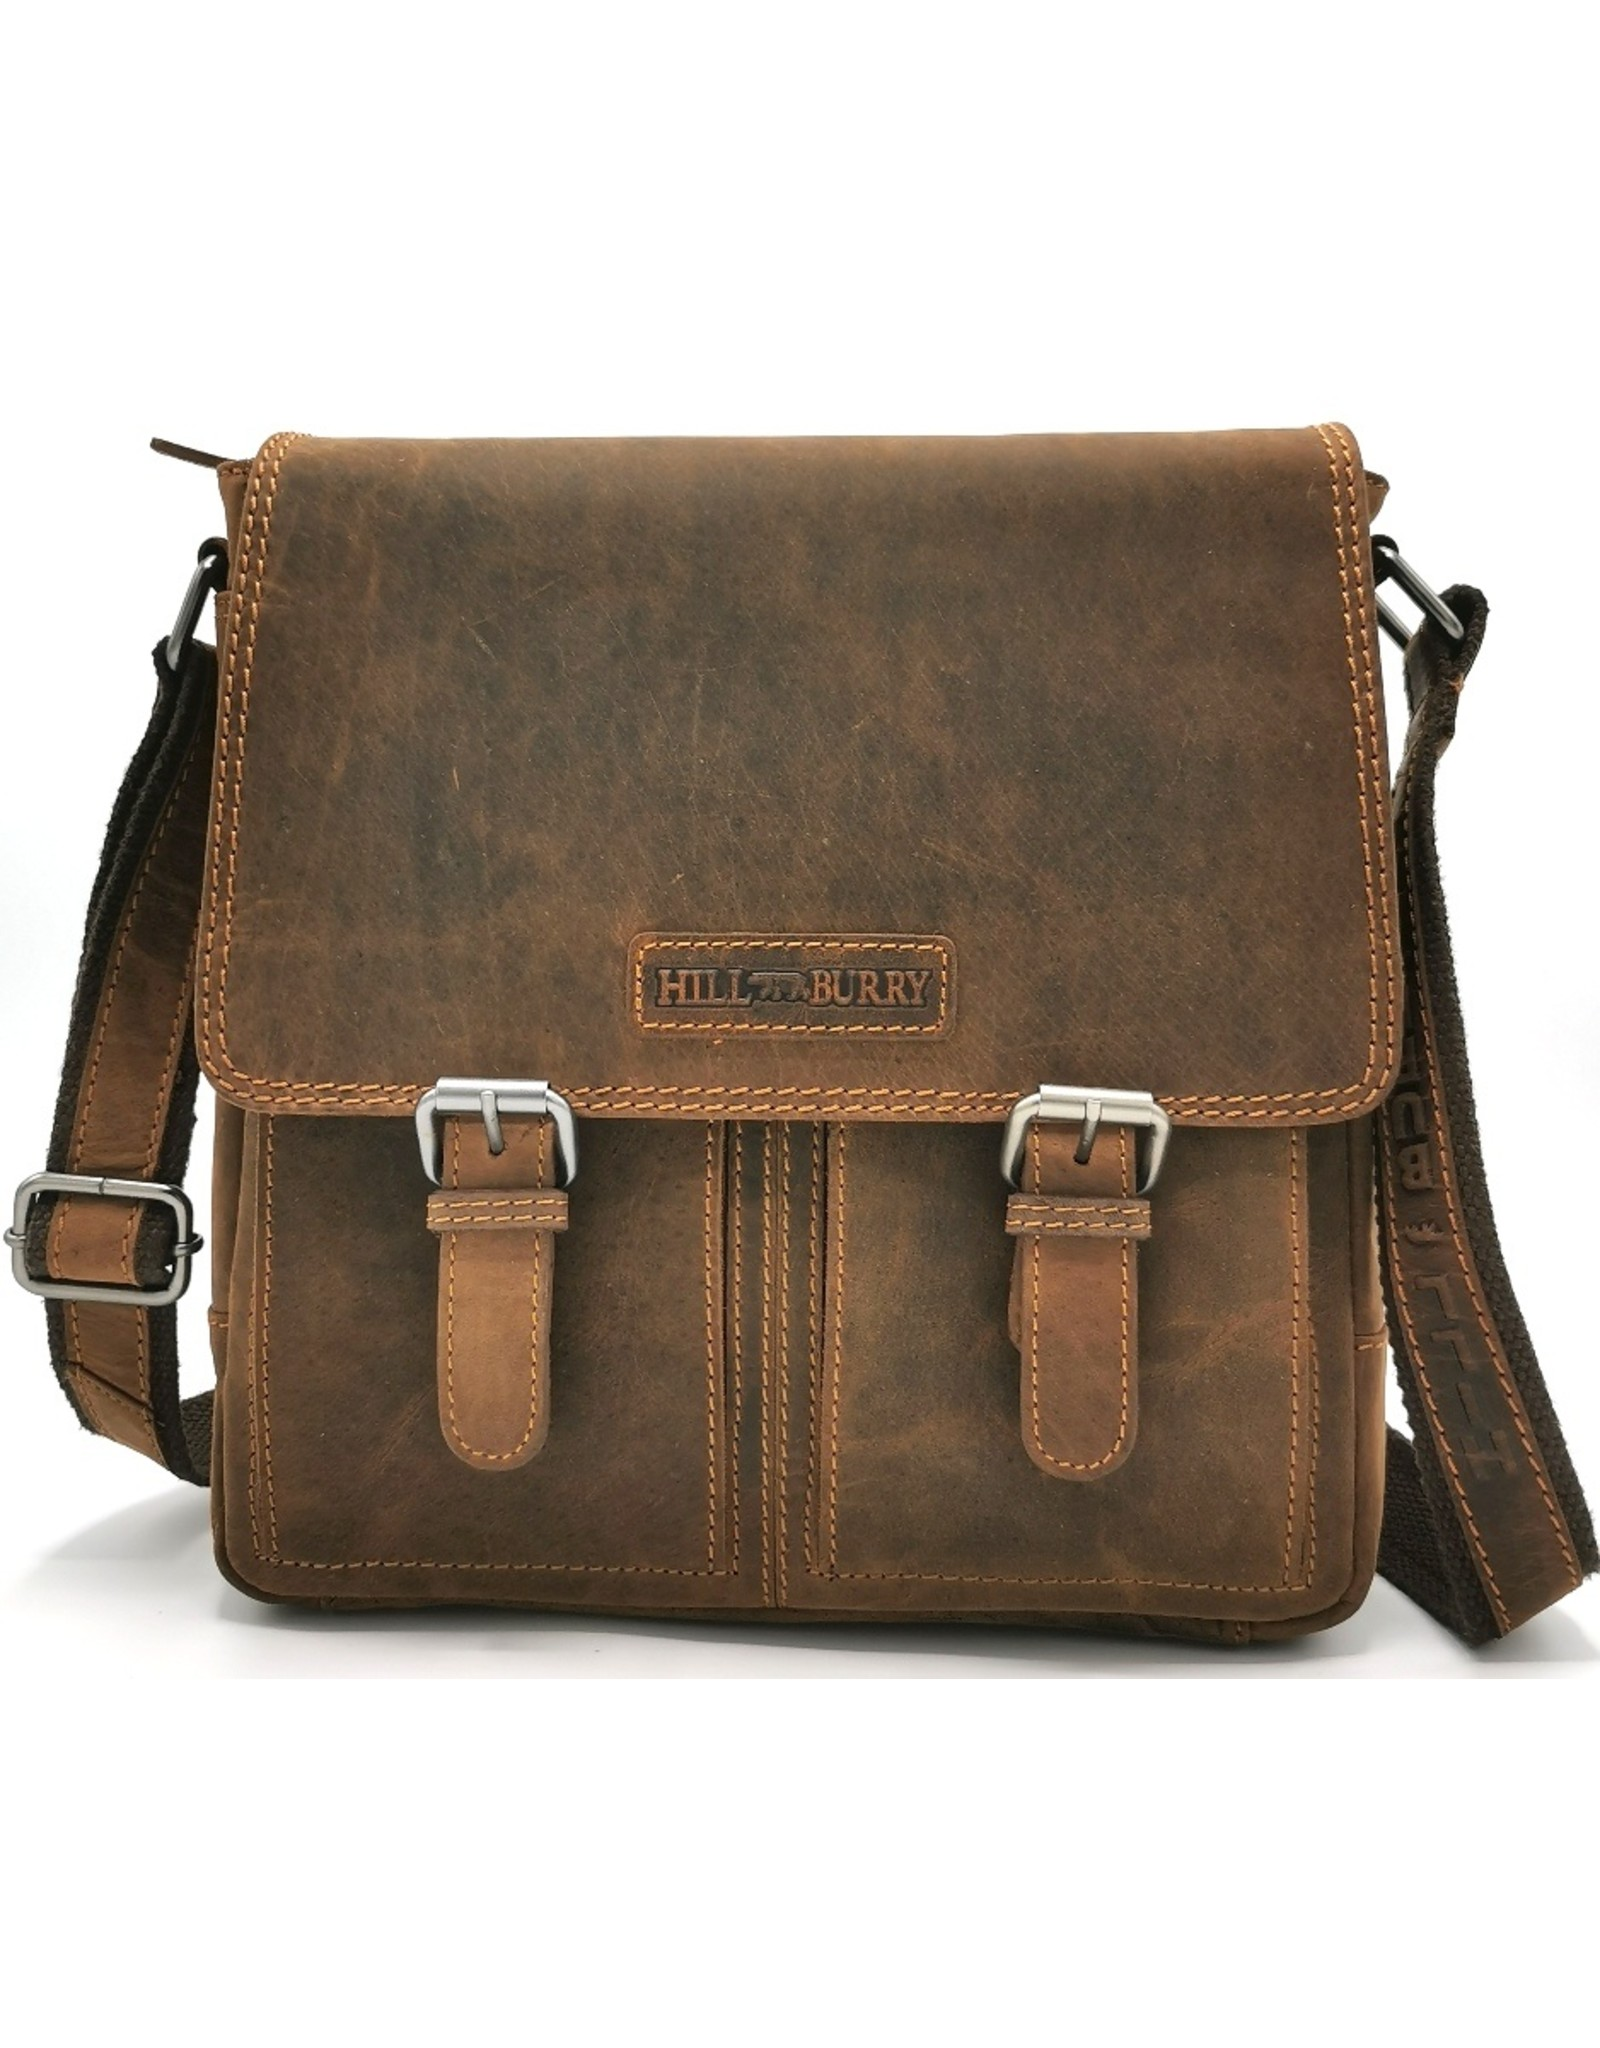 HillBurry Leather Shoulder bags  Leather crossbody bags - HillBurry Leather Crossbody bag (Dark Tan)